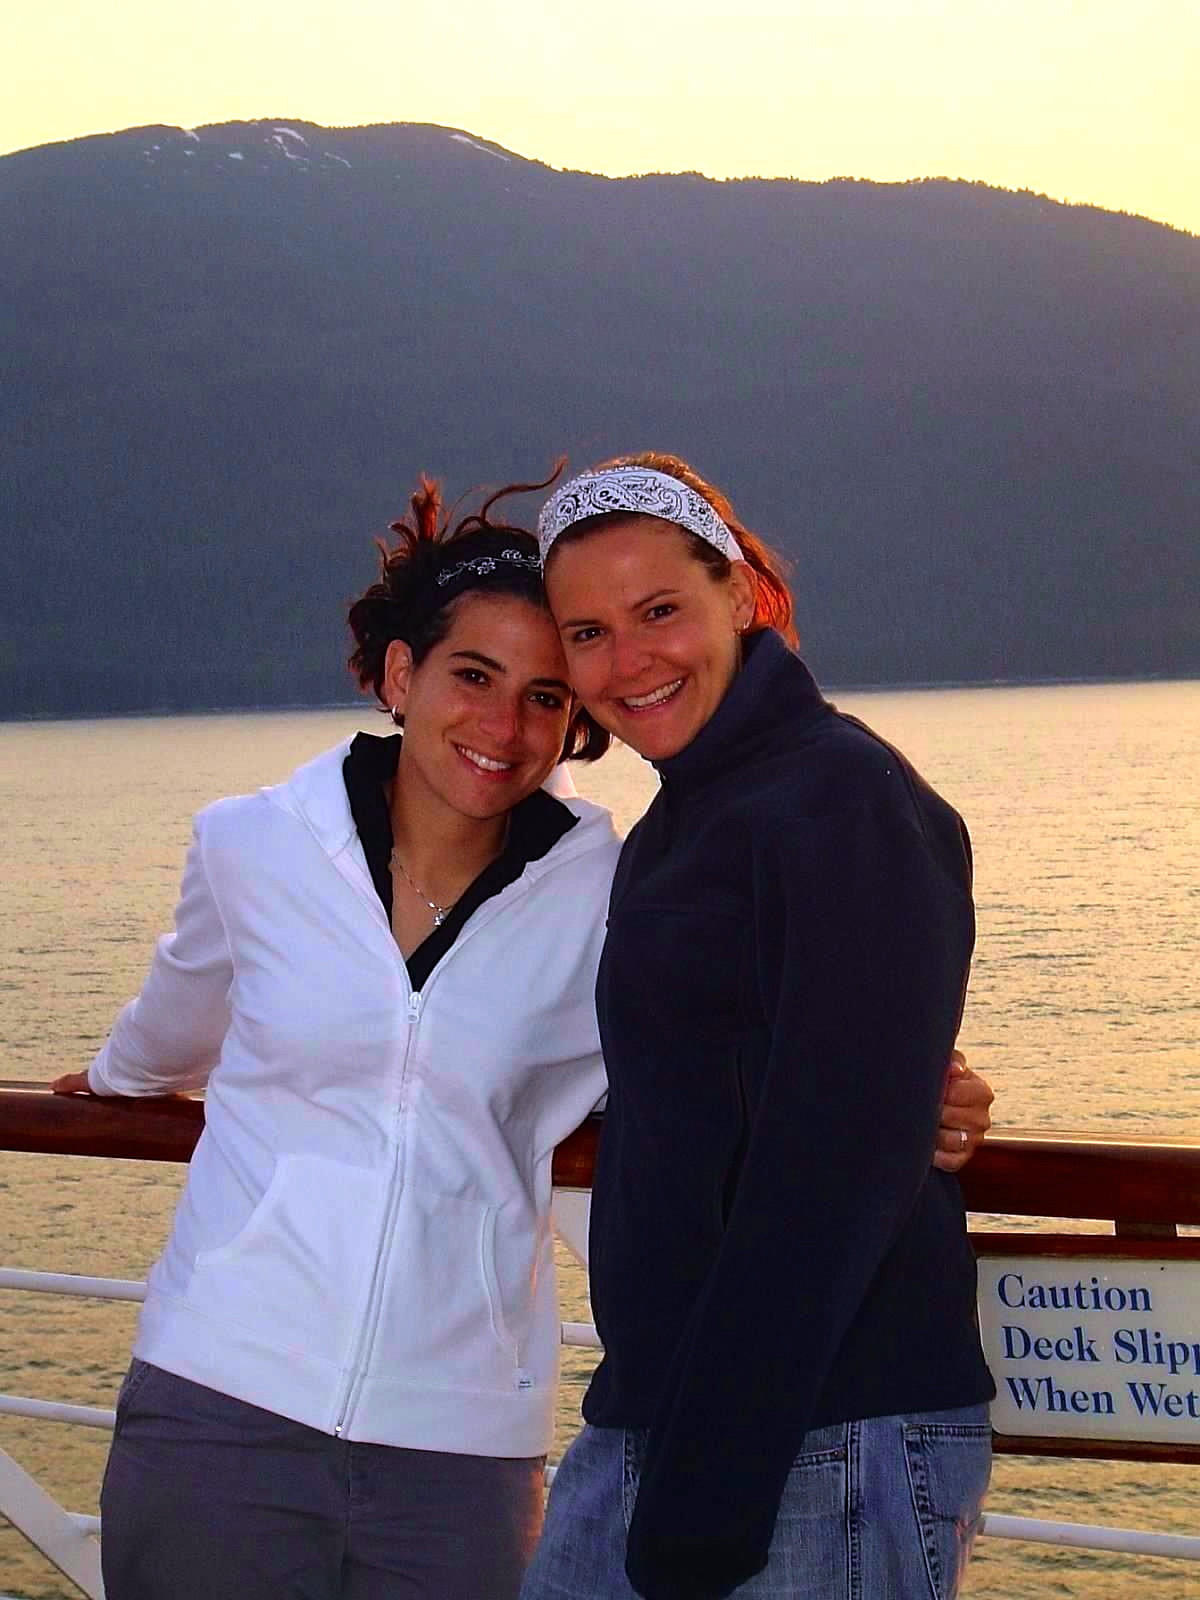 Amy Sadler, left, and Nikole Quasney in Alaska. U.S. District Judge Richard Young entered a temporary restraining order that requires the State of Indiana to recognize the August 2013 marriage of Sandler and her ailing spouse, Nikole Quasney, who was diagnosed with ovarian cancer in 2009.